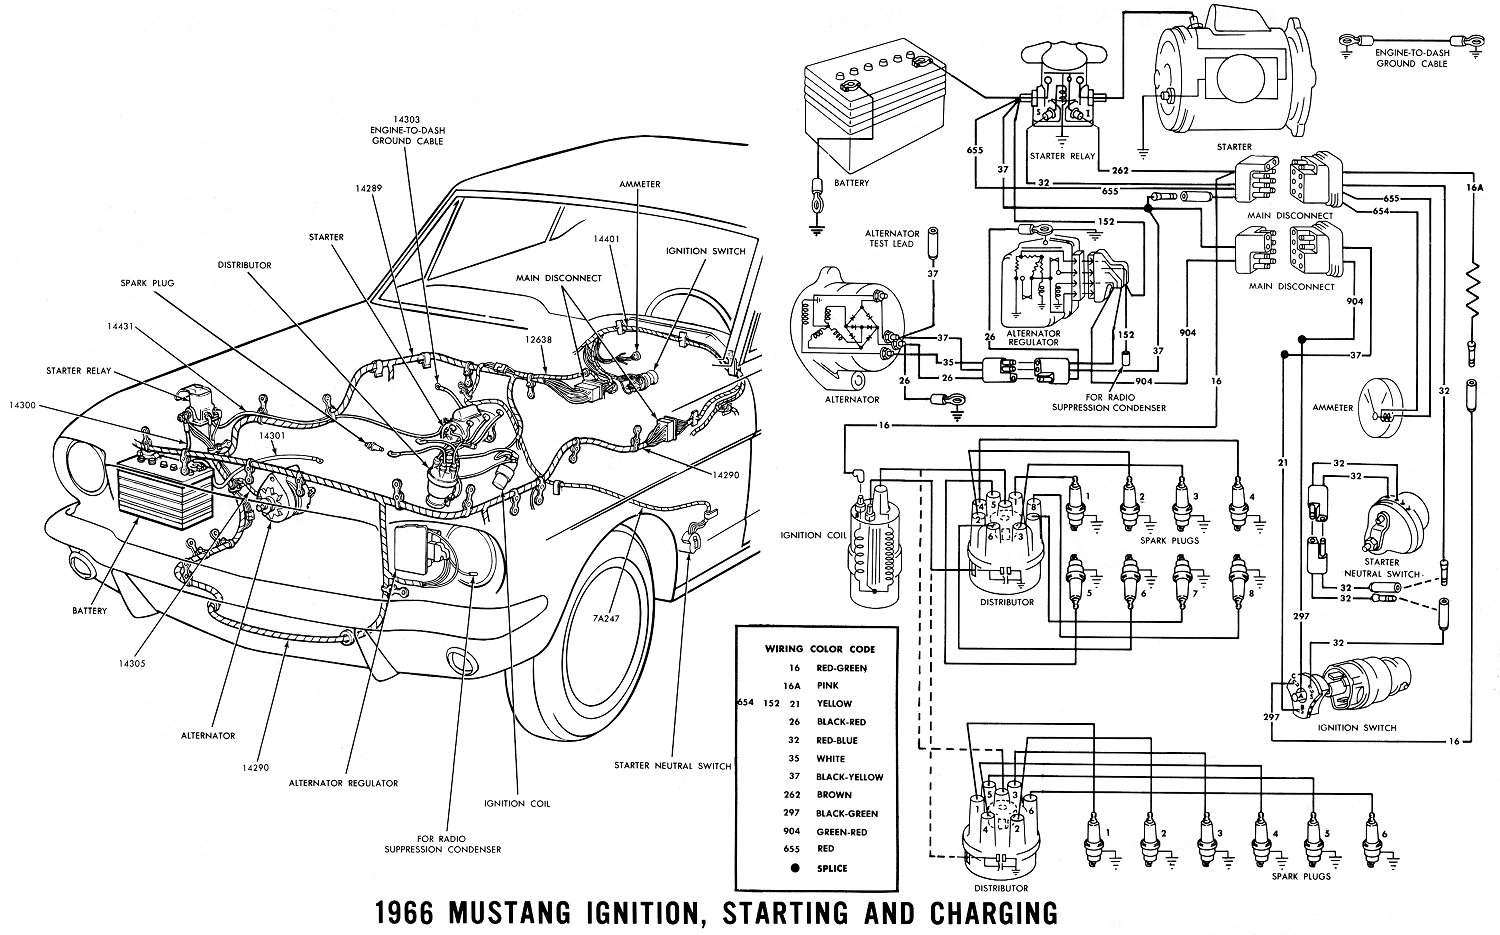 1987 chevy camaro alternator wiring diagram with Respond on 1967 Ford F250 Wiring Diagram likewise respond further 87 Camaro Tpi Wiring Diagram furthermore Occupants 1976 4door topic5330 page13 likewise 96 Lt1 Wiring Diagram.